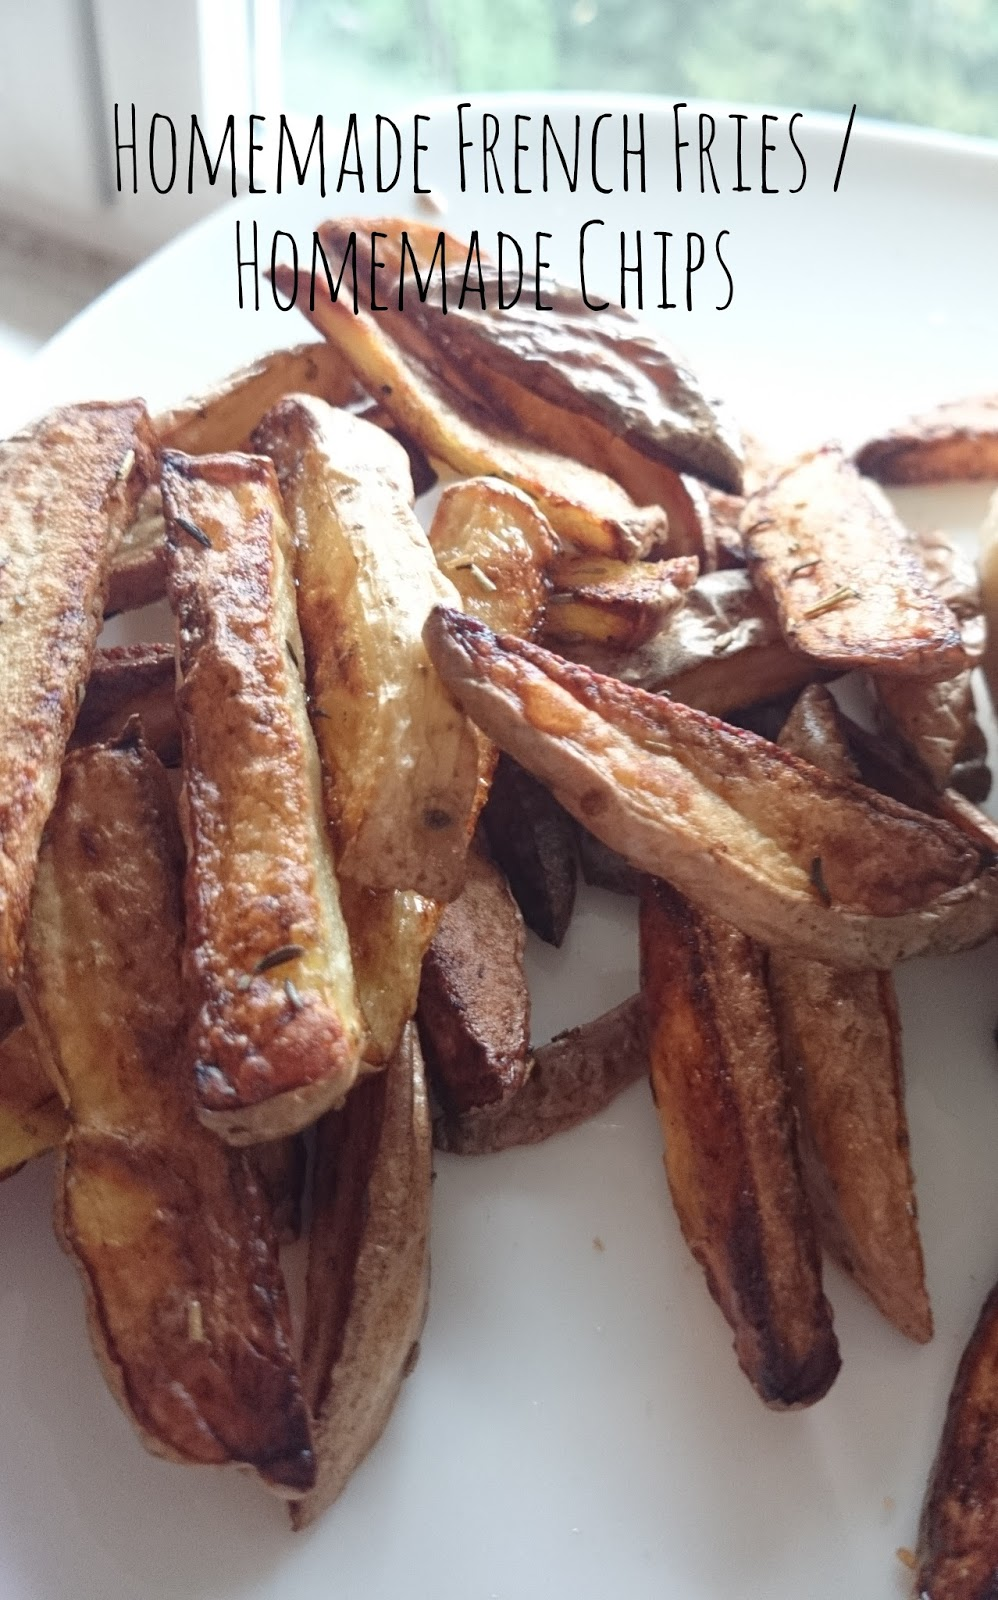 Homemade French Fries / Homemade Chips without fryer